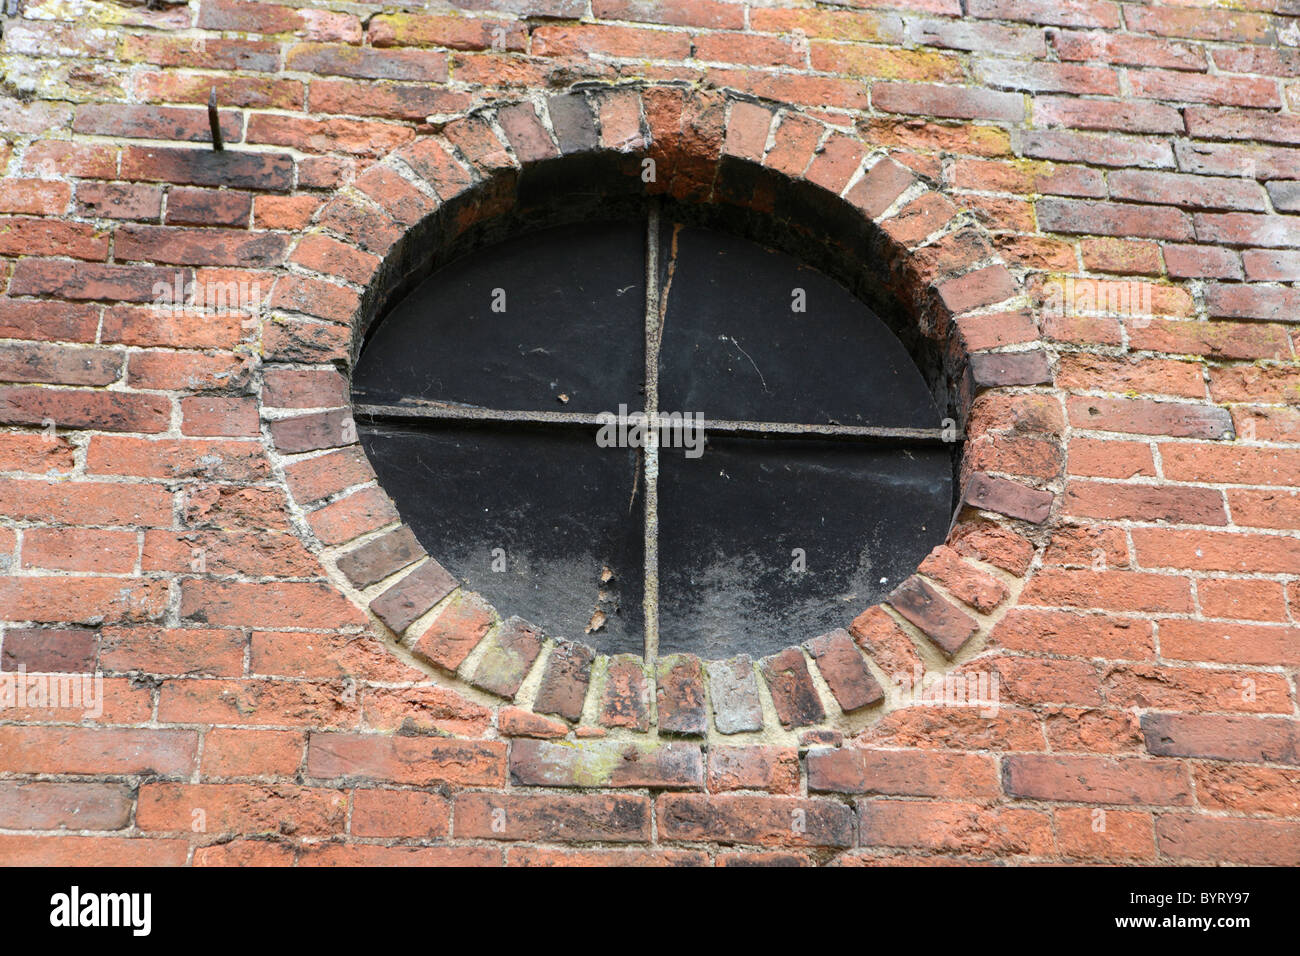 round window boarded up - Stock Image